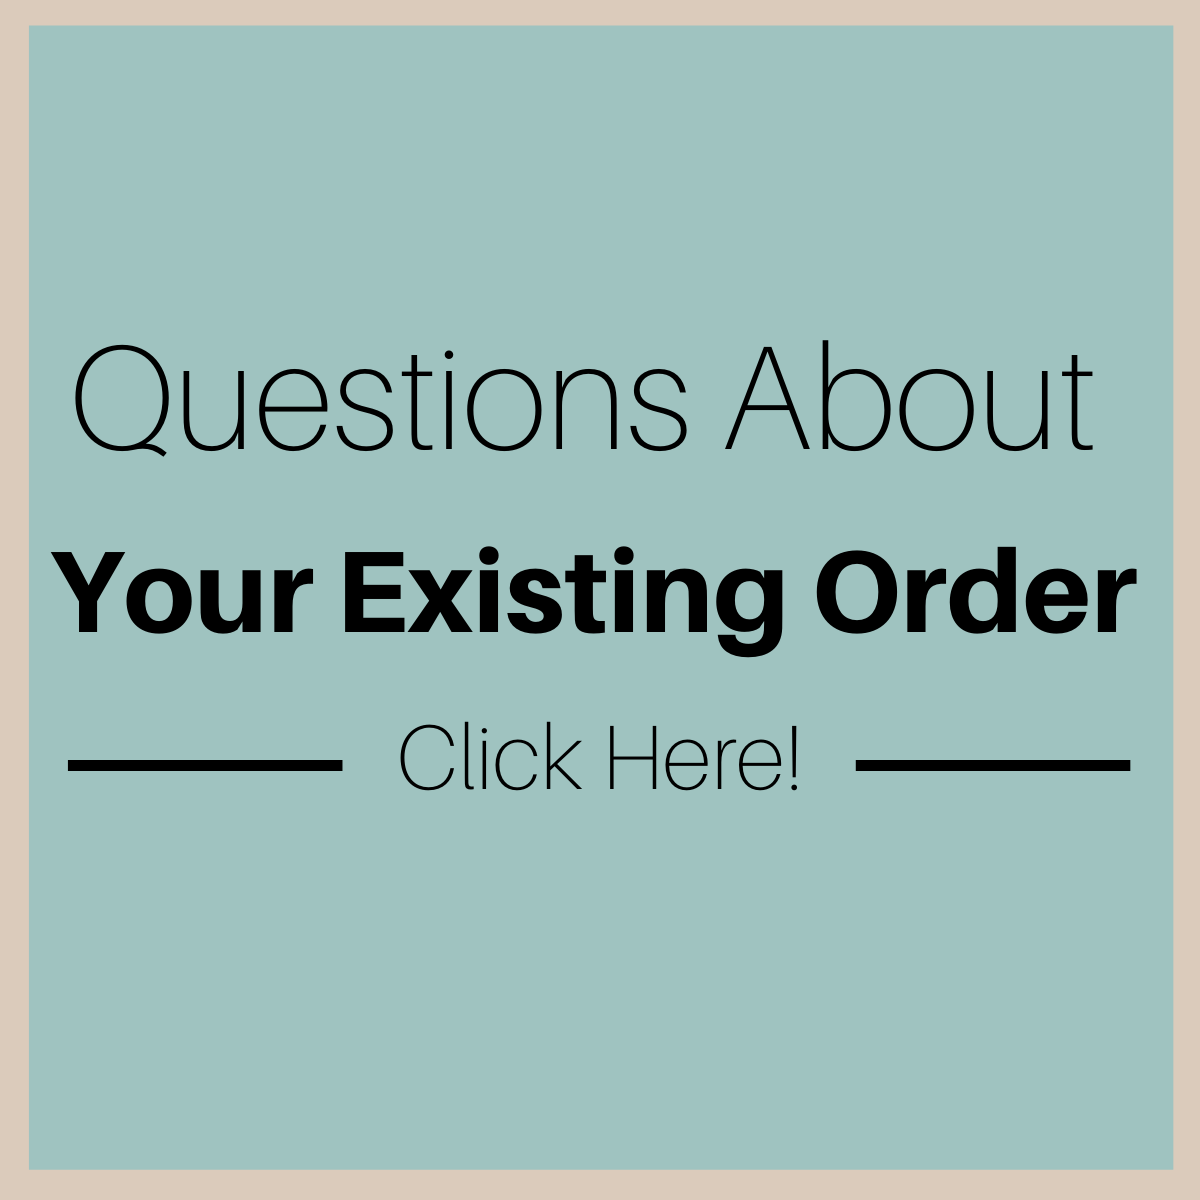 Questions about your existing order at fireplace doors online? Click here!